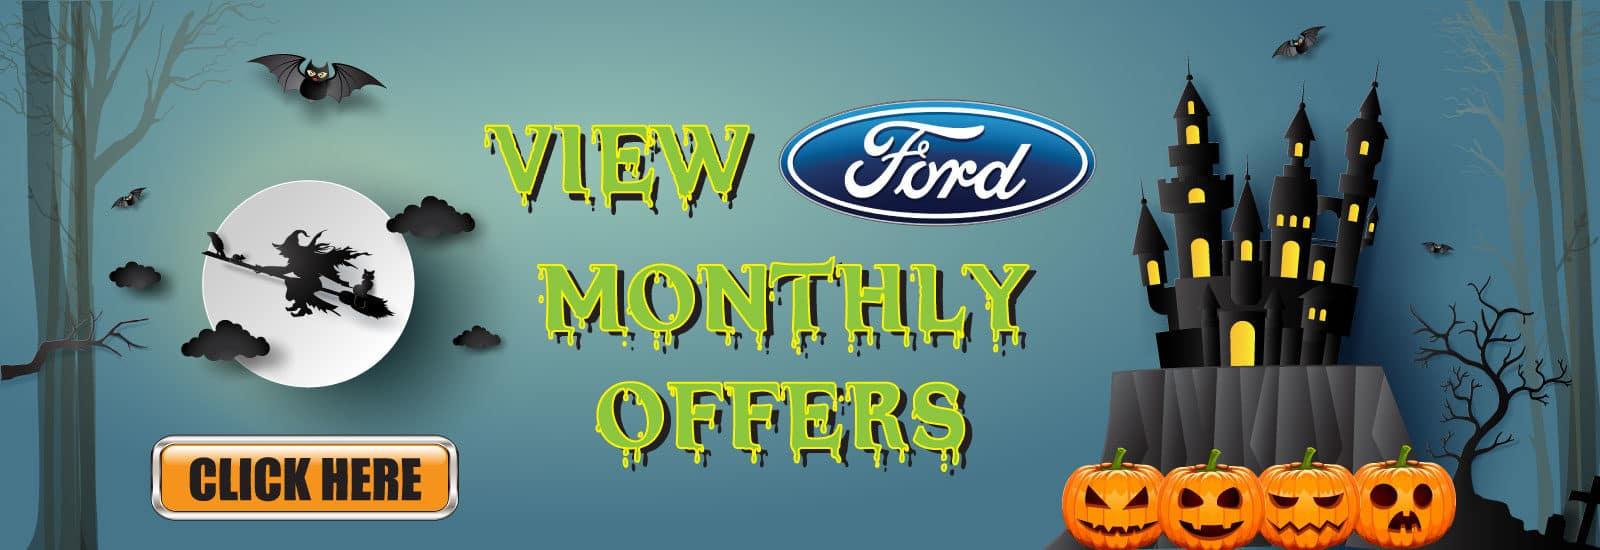 OCT. FORD MONTHLY OFFERS